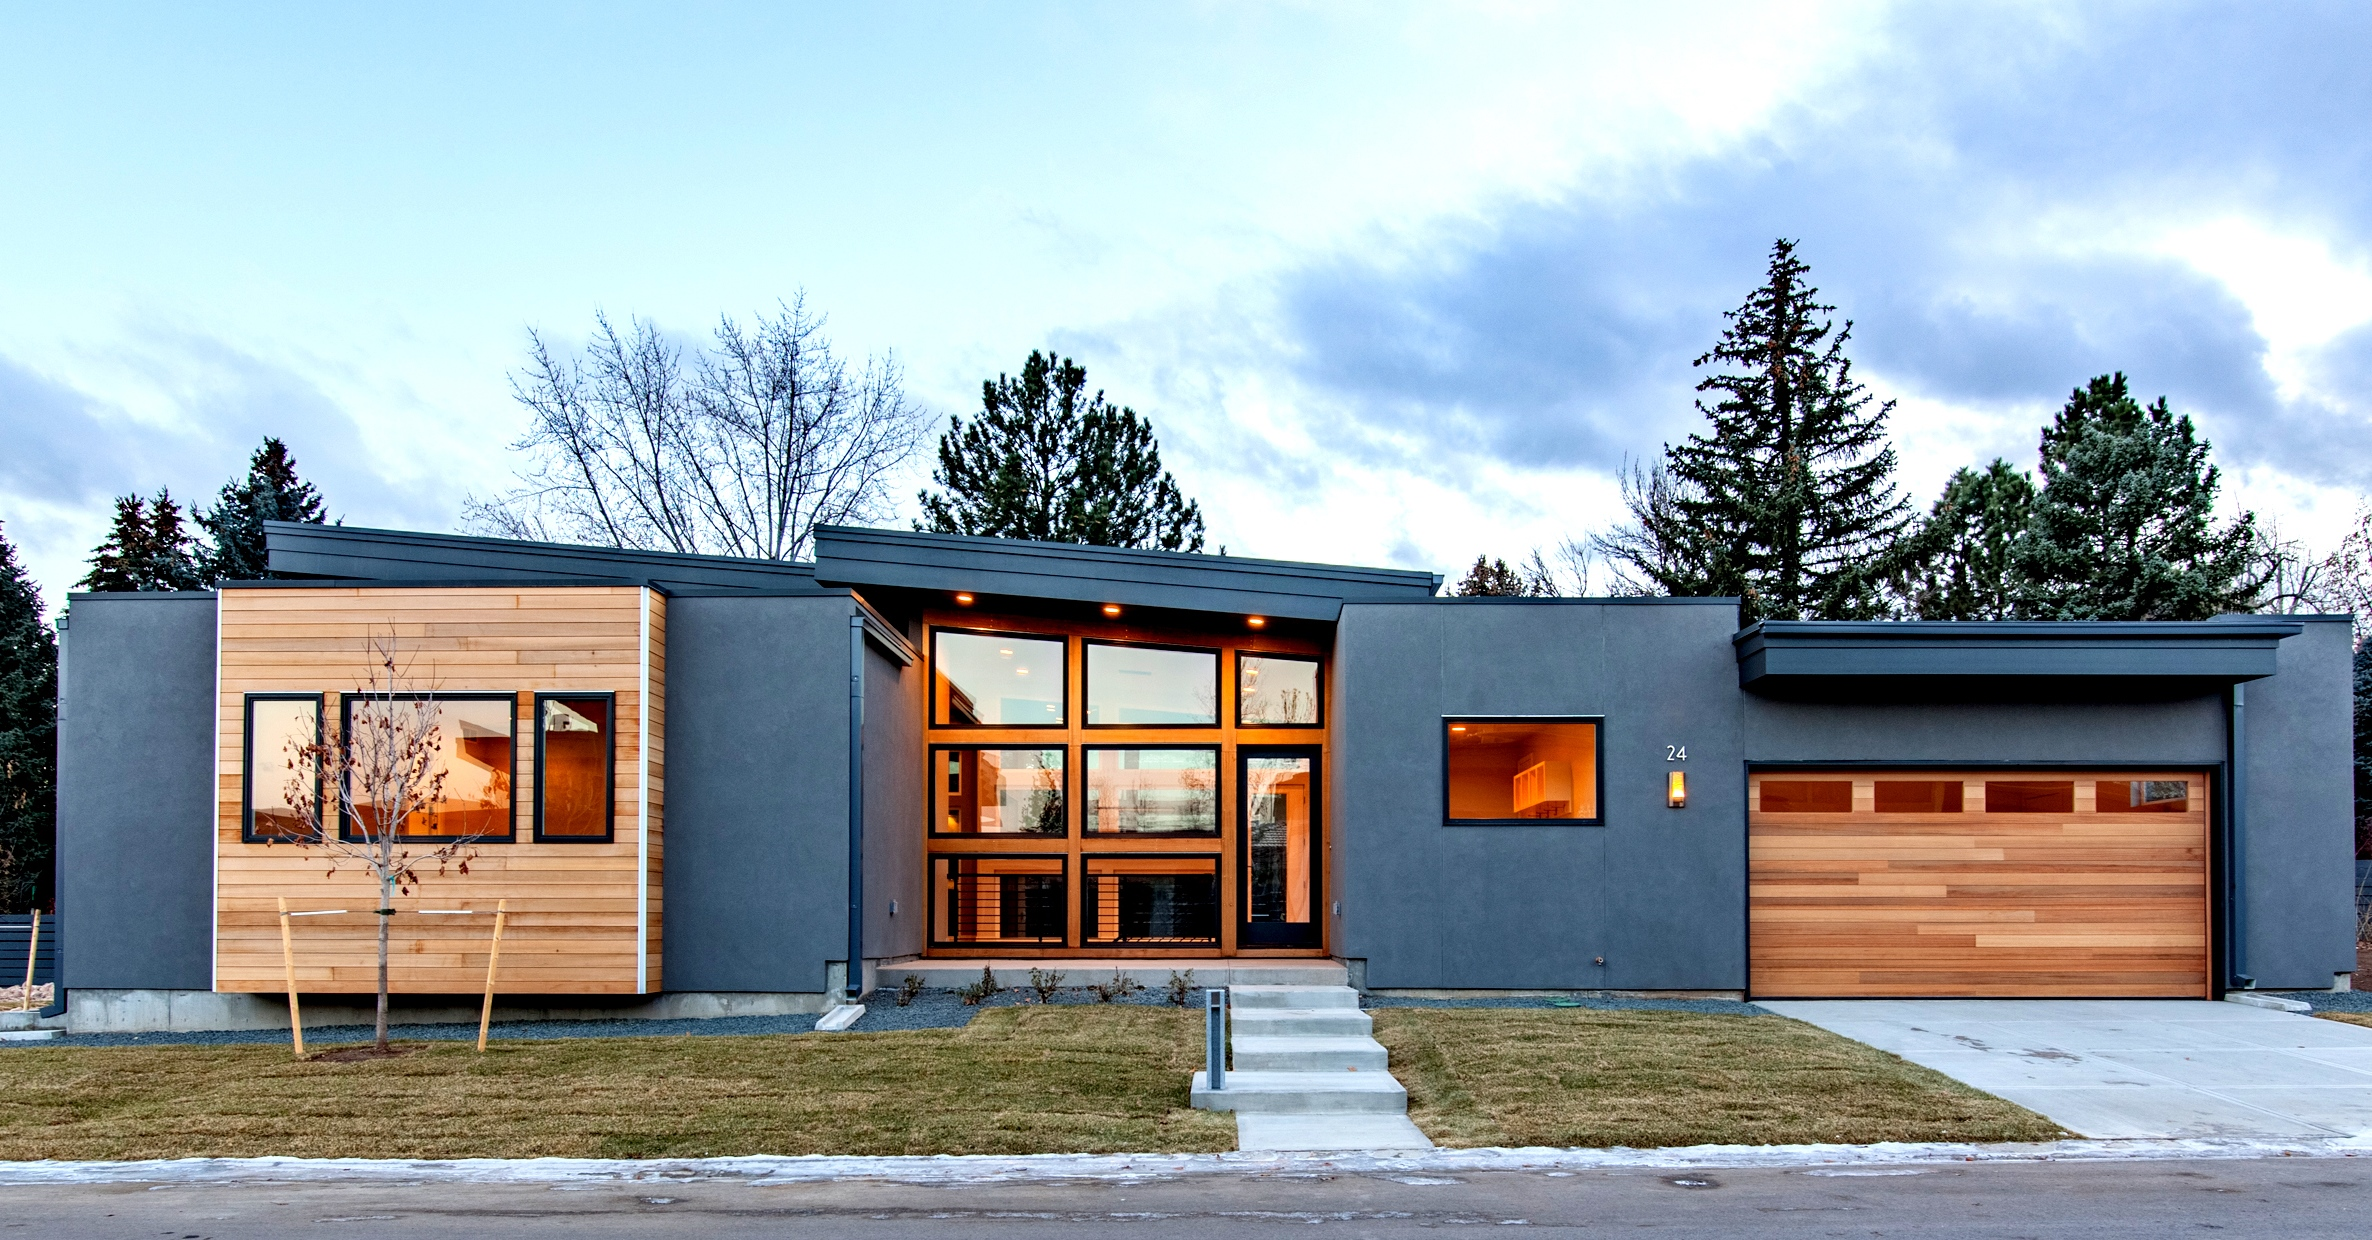 Modern architecture home design studio gunn denver for Architecture moderne